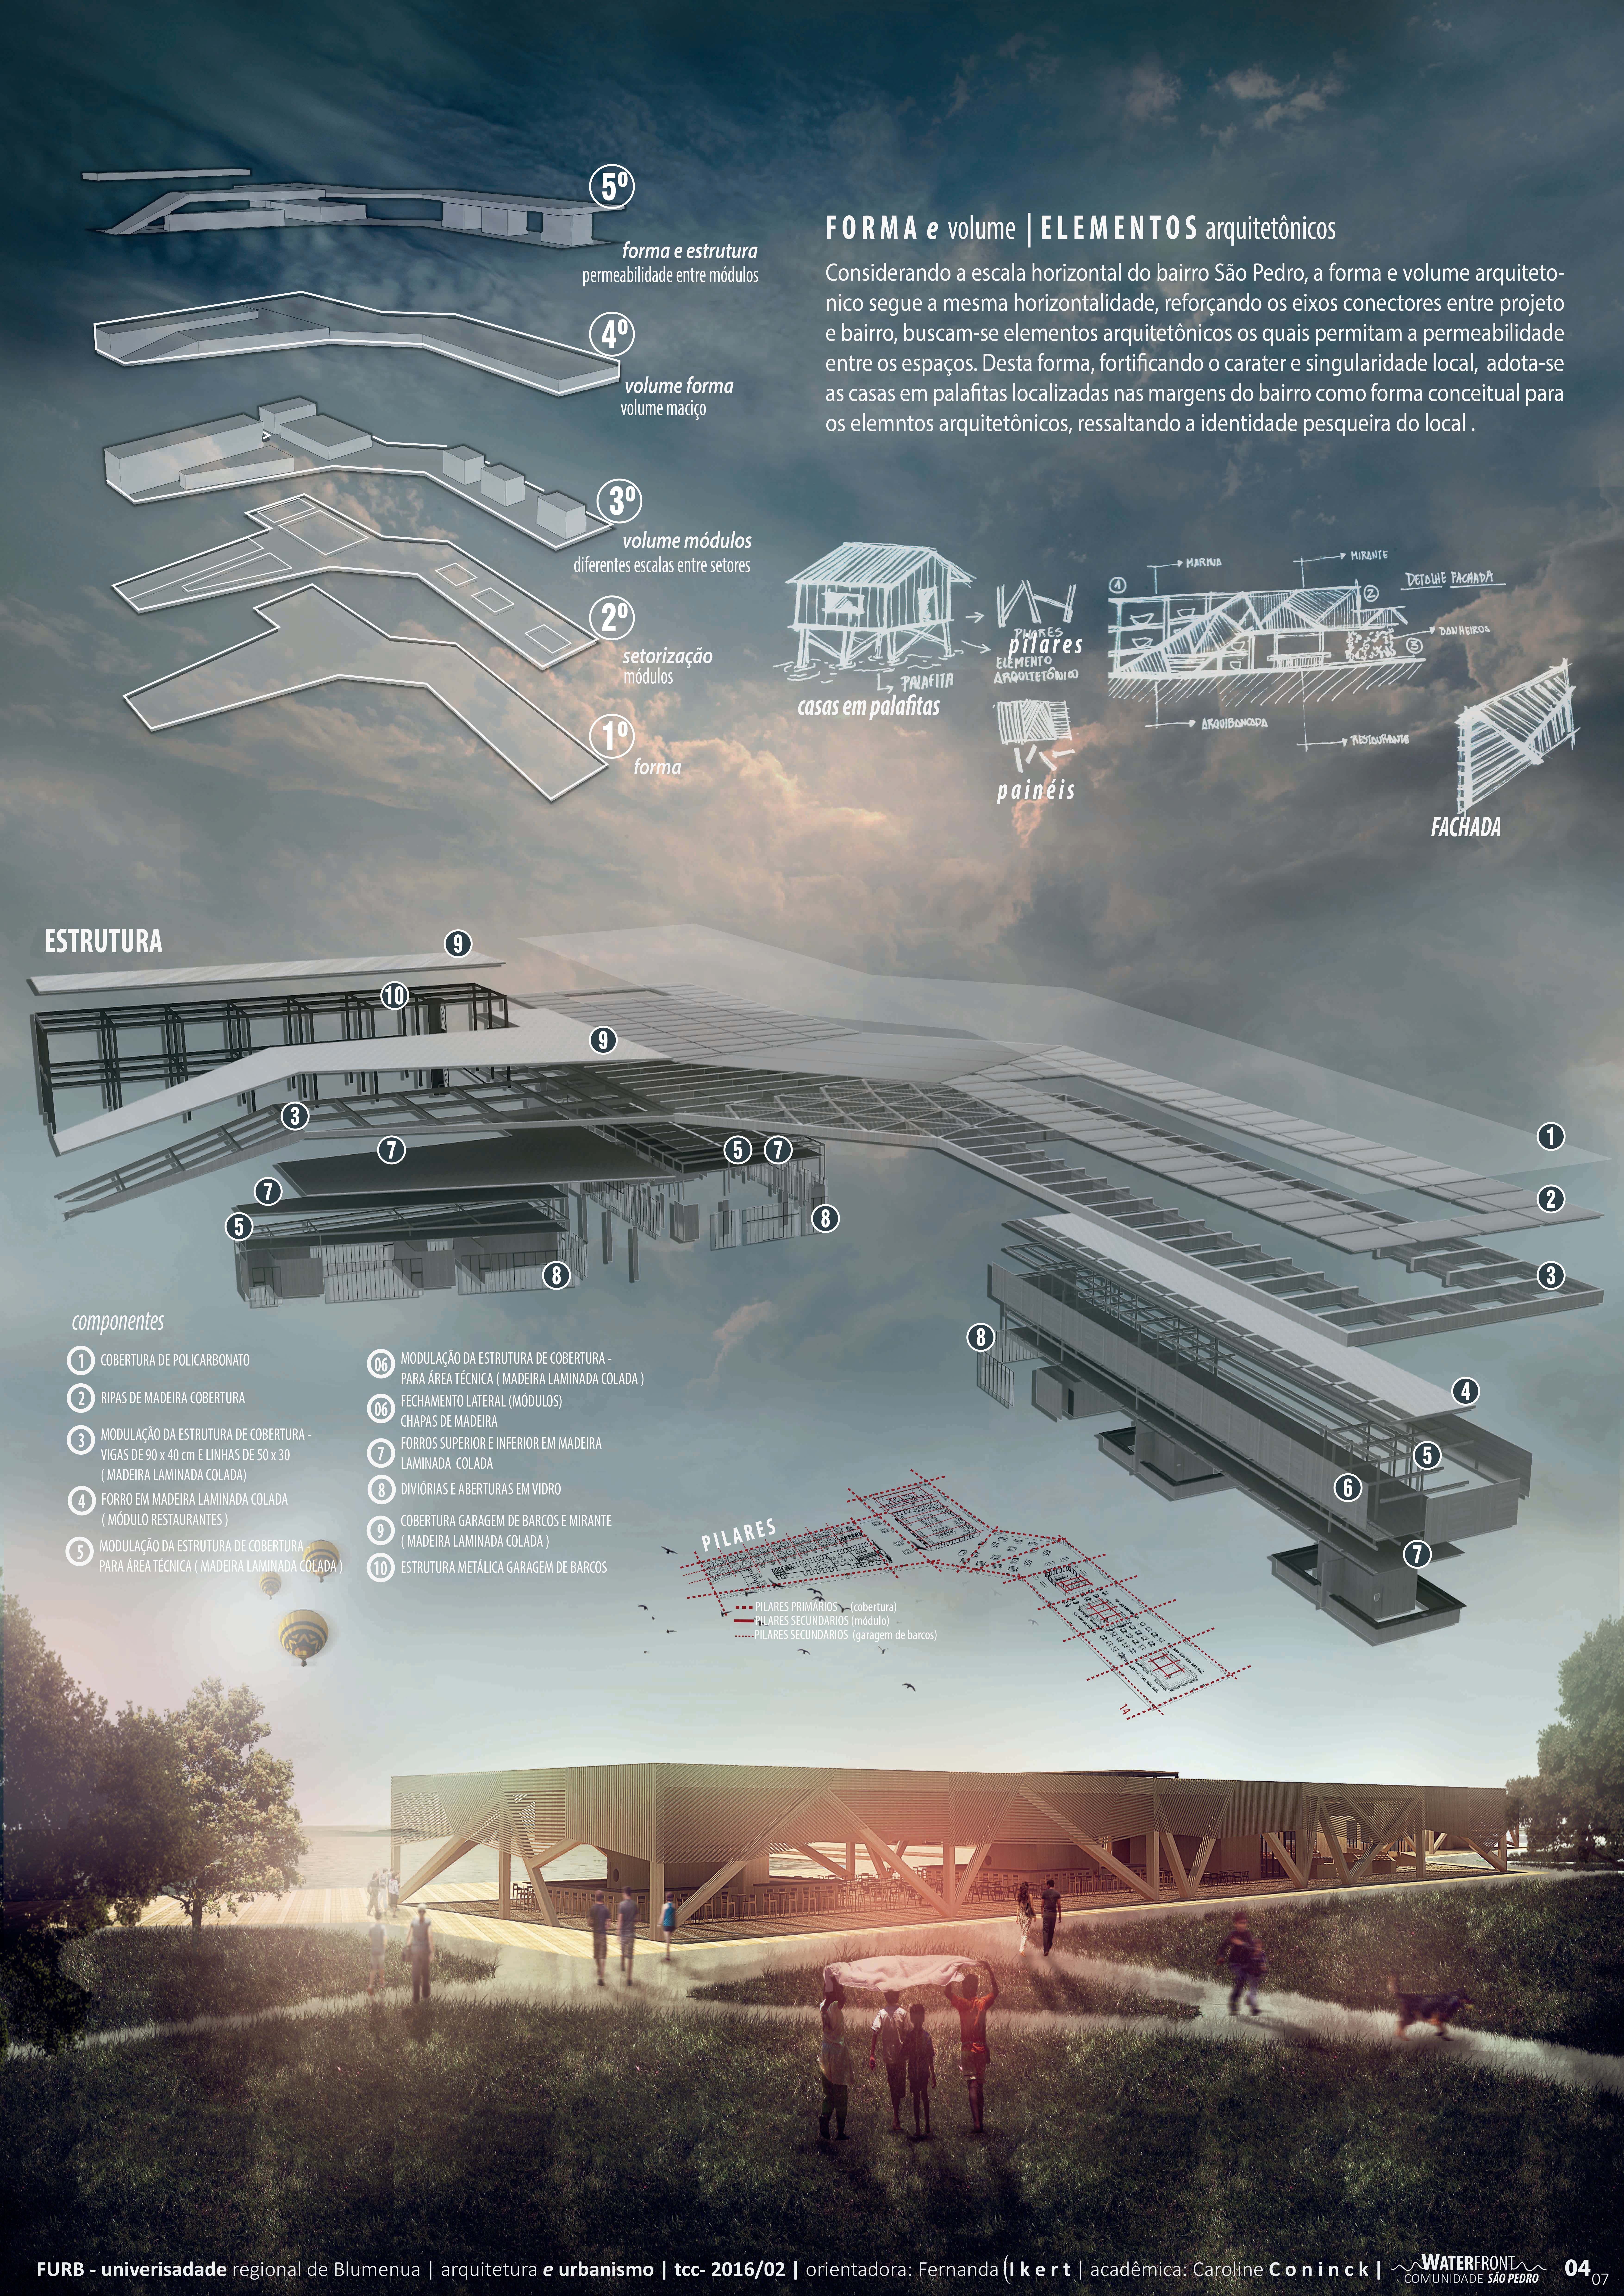 architectural presentation board techniques - Google Search | Renderings | Pinterest | Architectural presentation and Architectural drawings